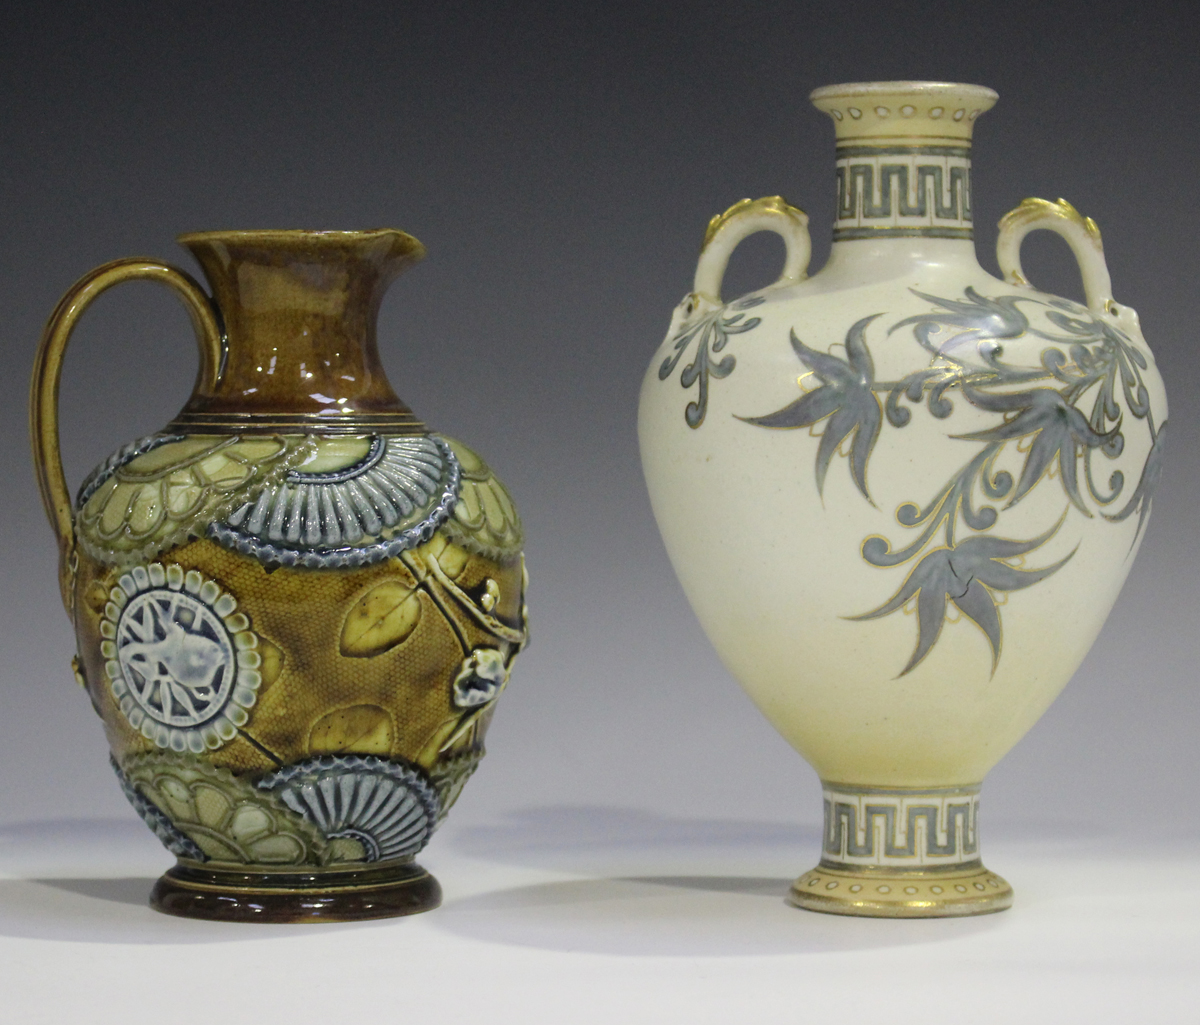 A Doulton Lambeth stoneware jug, 1880-1891, decorated in relief with flowers and stylized fan